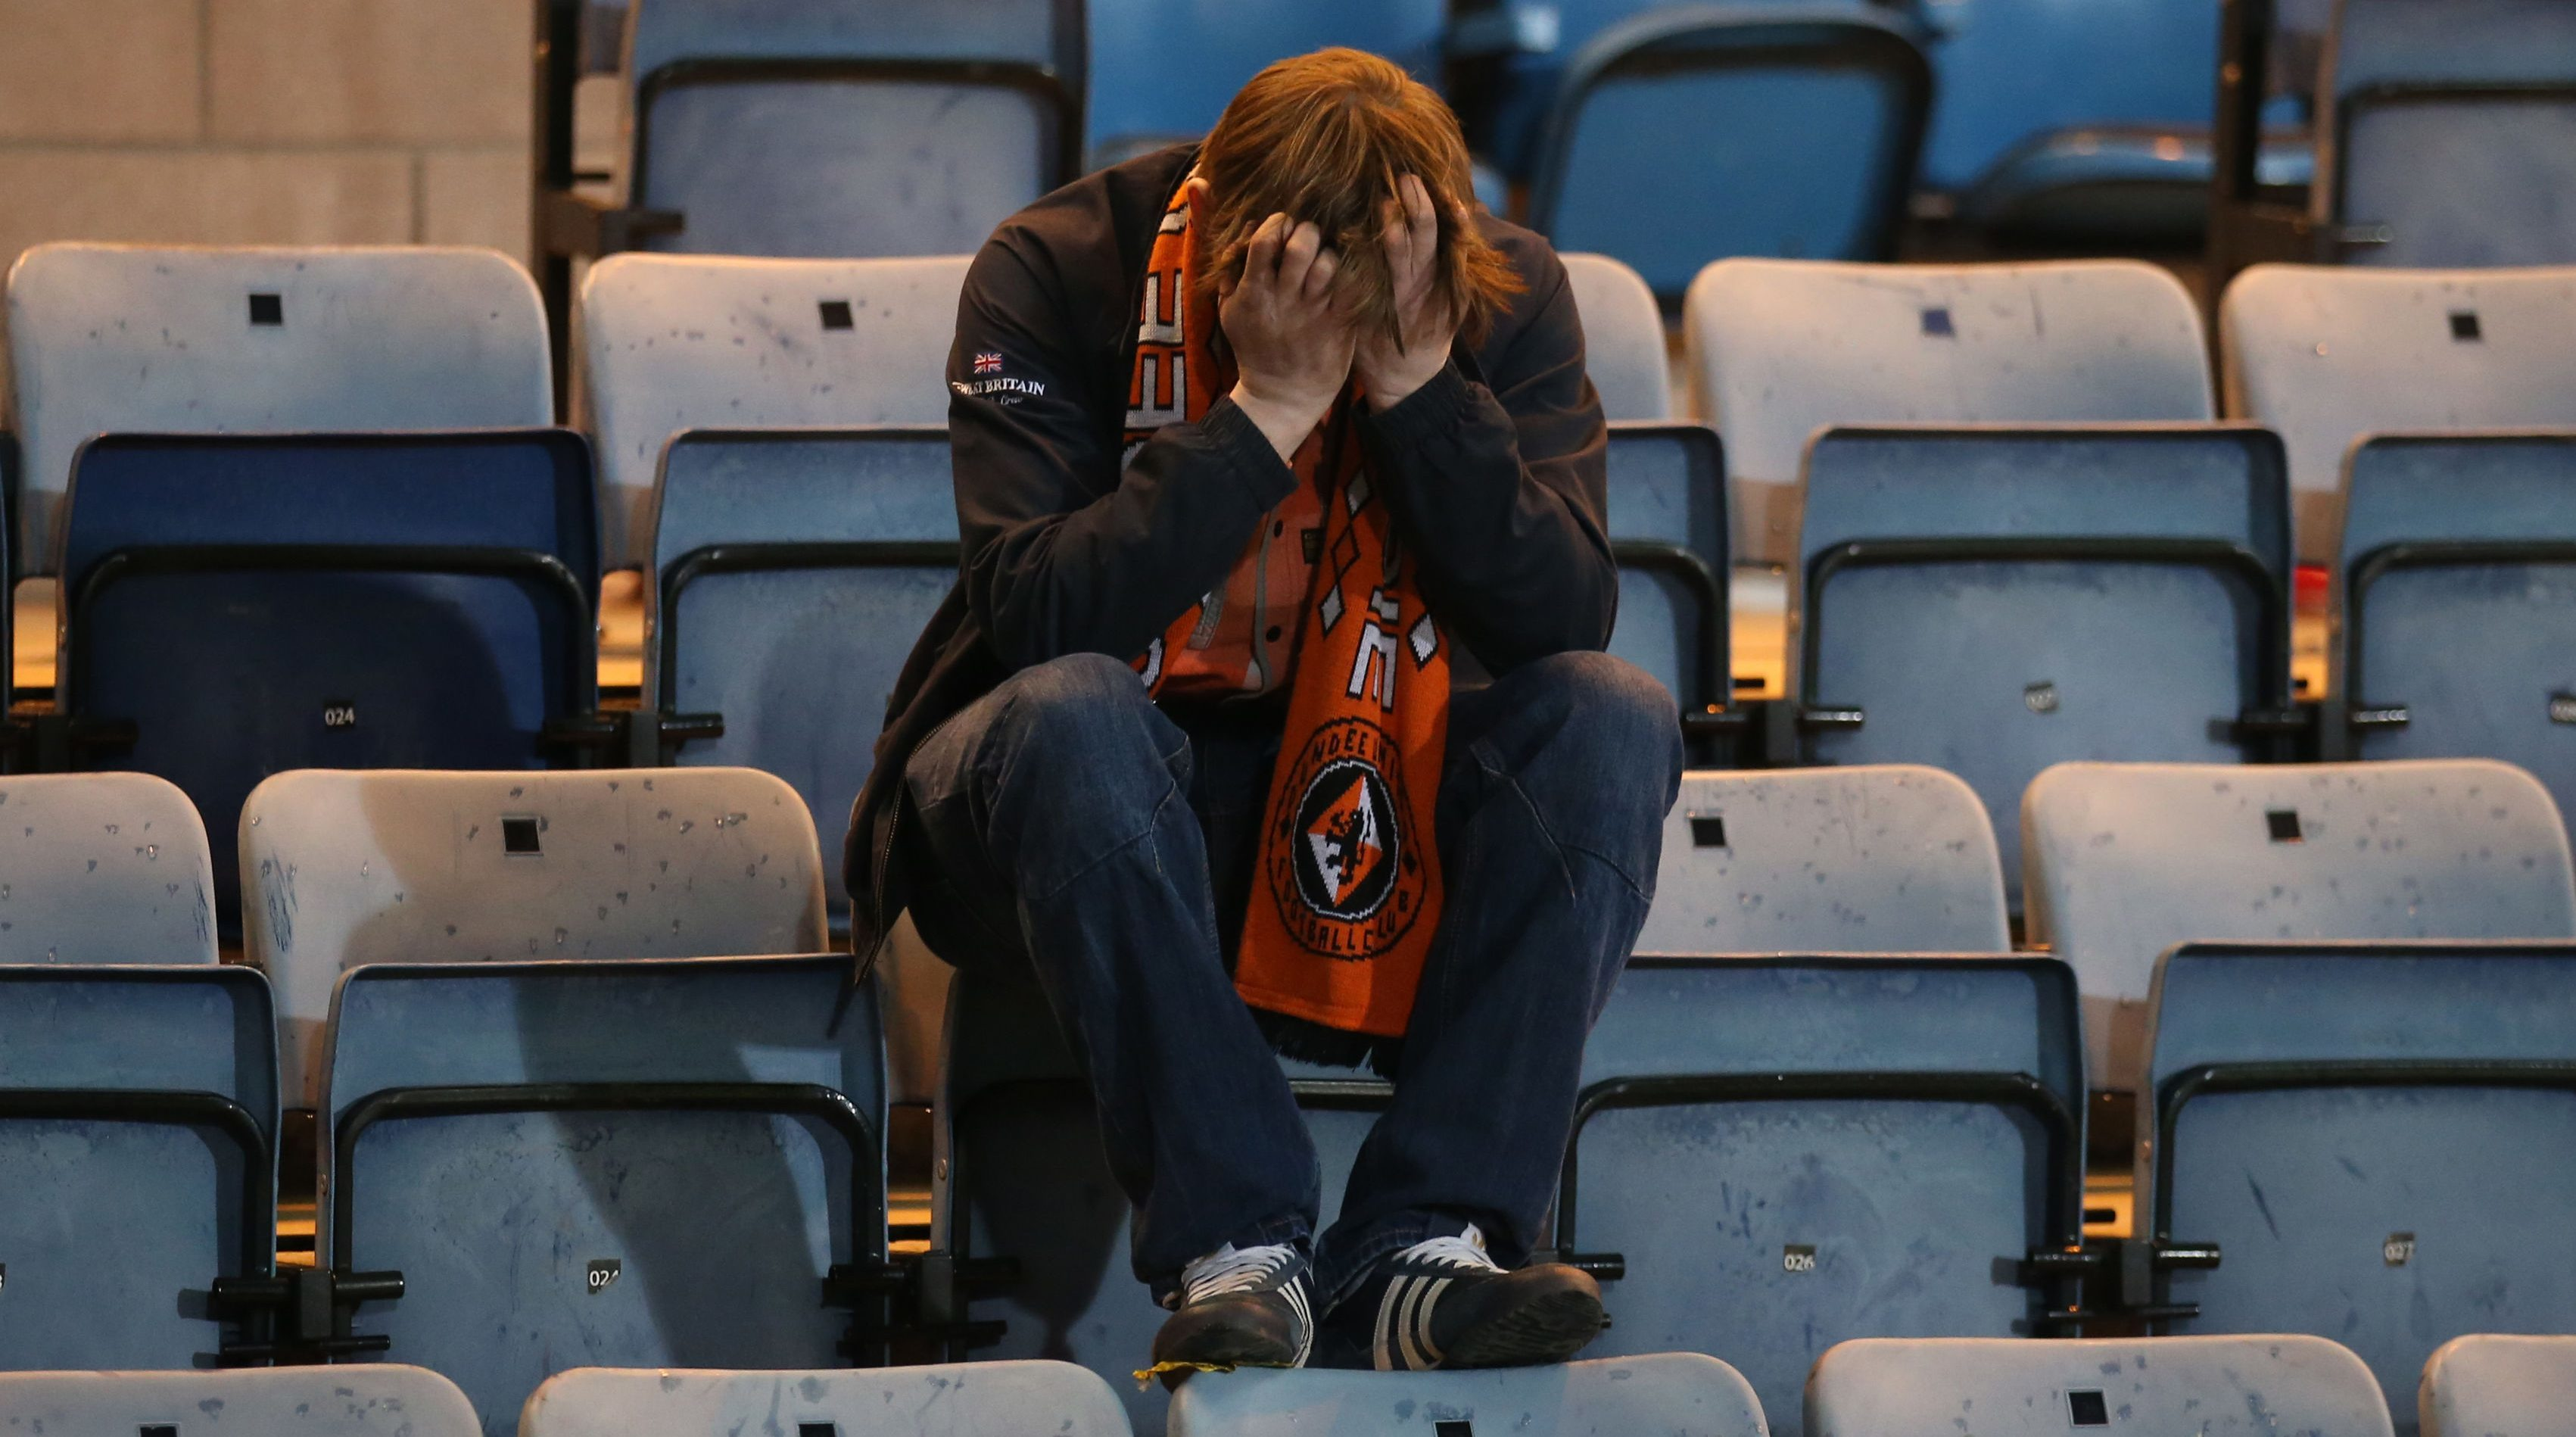 A Dundee United fan appears dejected after his side is relegated at the end of the Ladbrokes Scottish Premiership match at Dens Park.